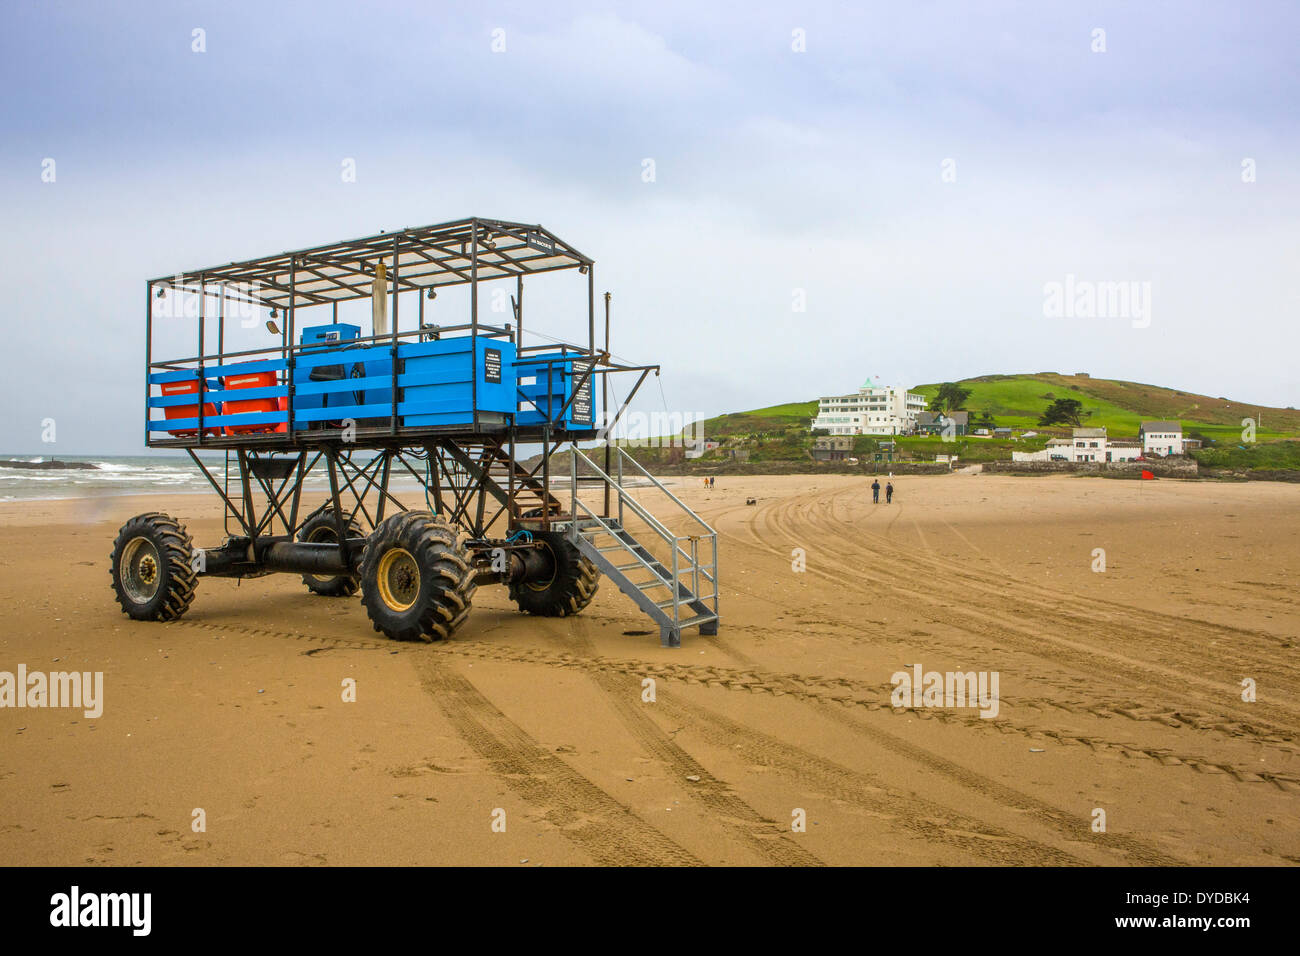 Burgh island with the sea tractor in the foreground. - Stock Image